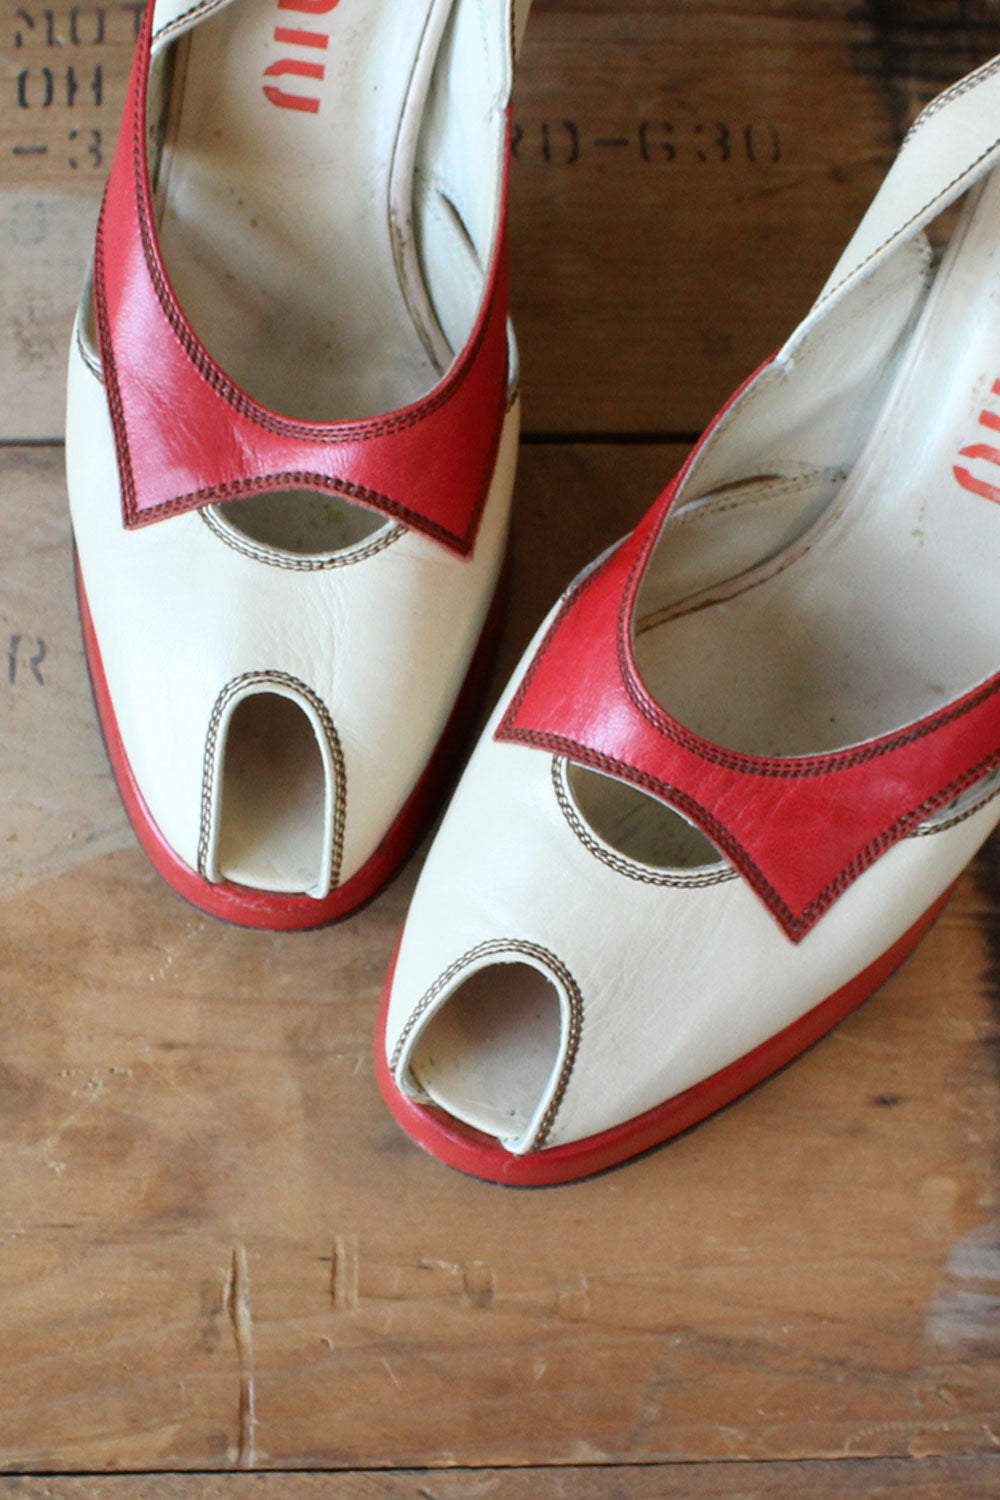 Miu Miu Cherry Platforms 8.5-9